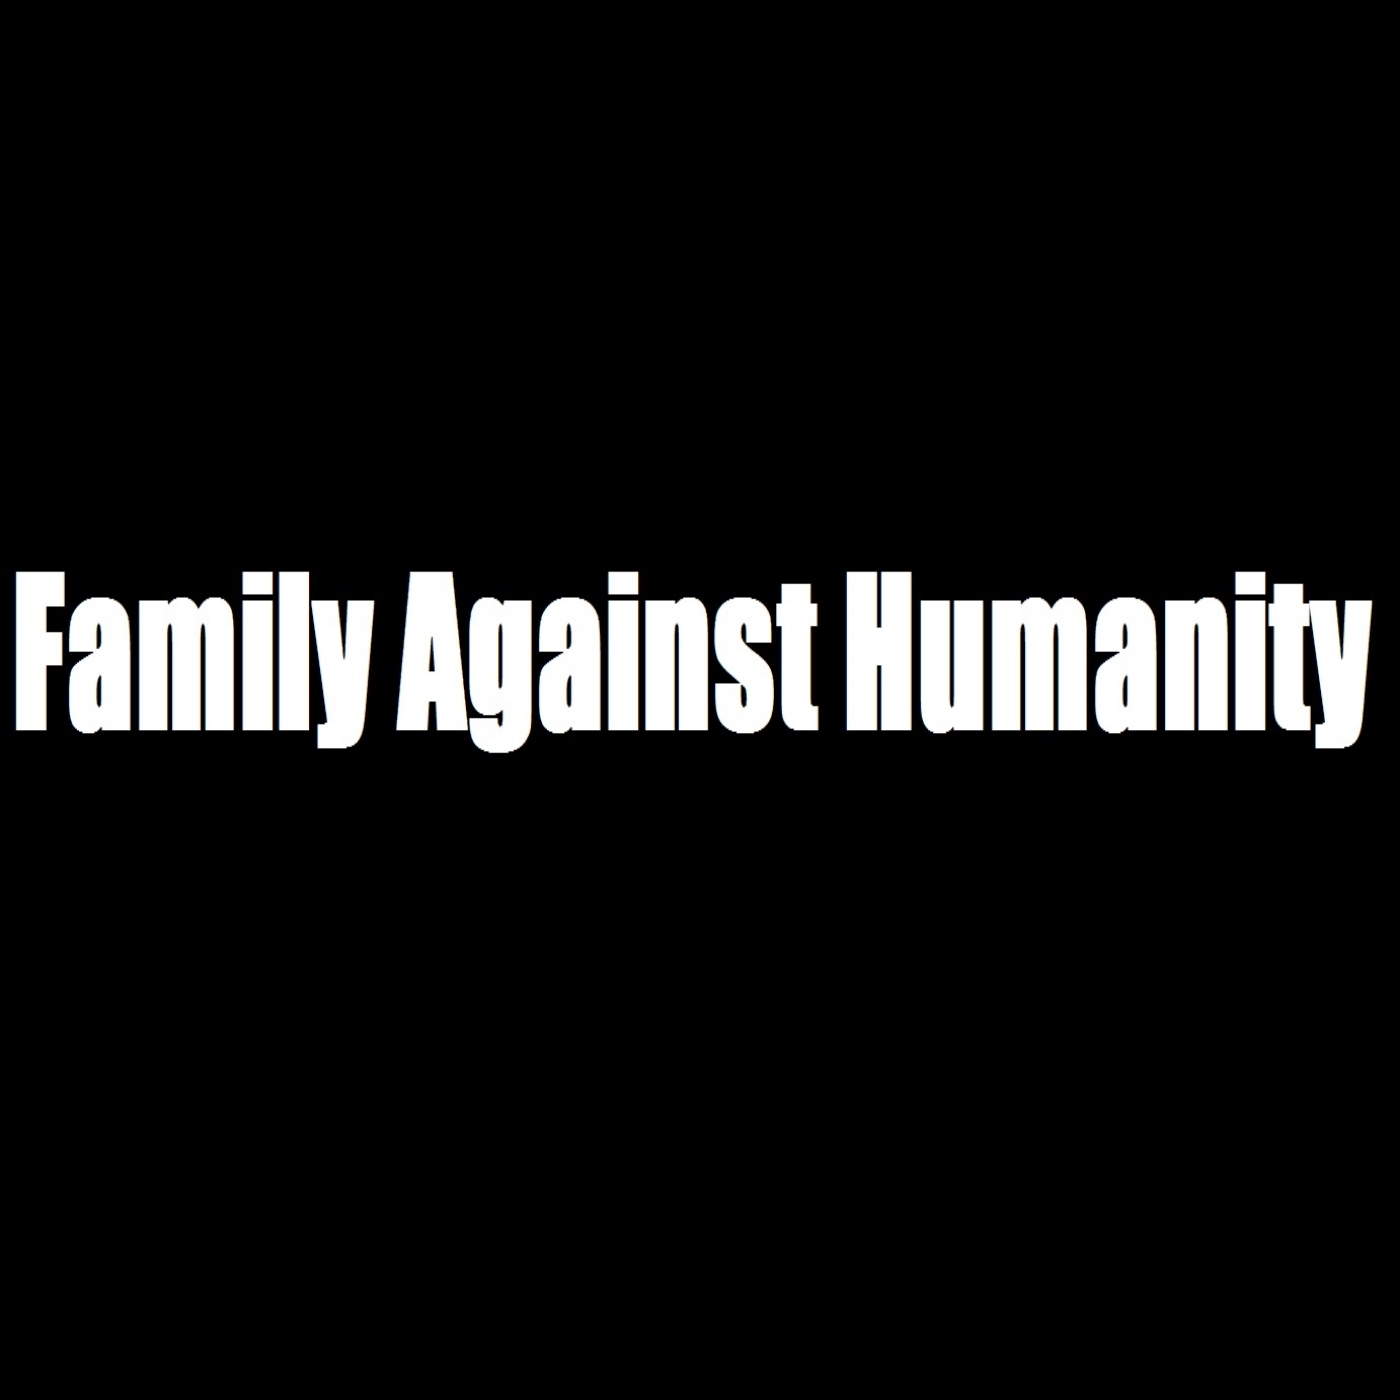 Family Against Humanity